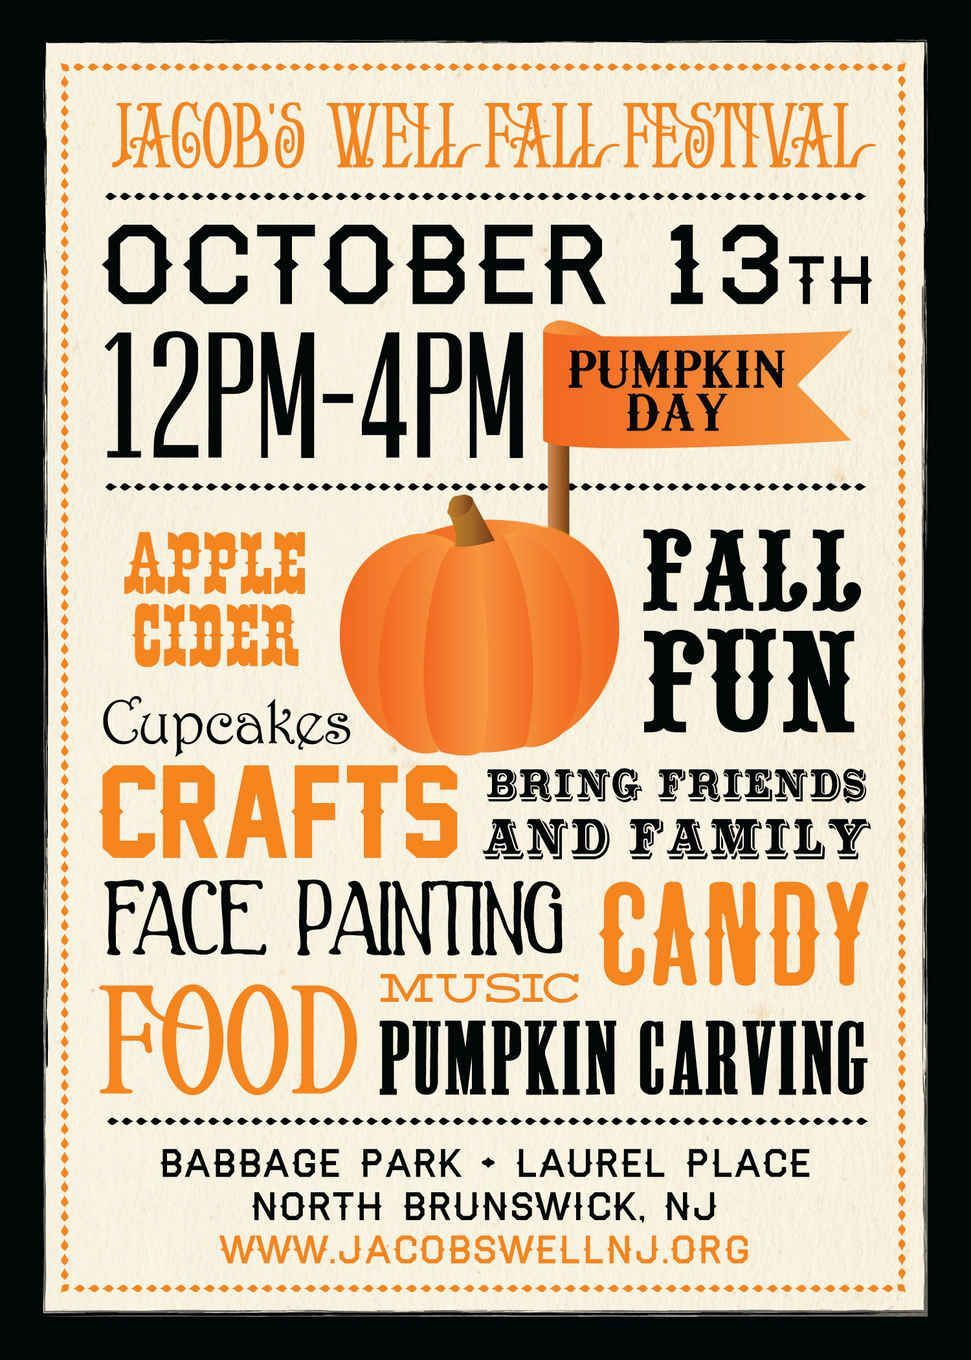 002 Simple Fall Festival Flyer Template Inspiration  FreeFull